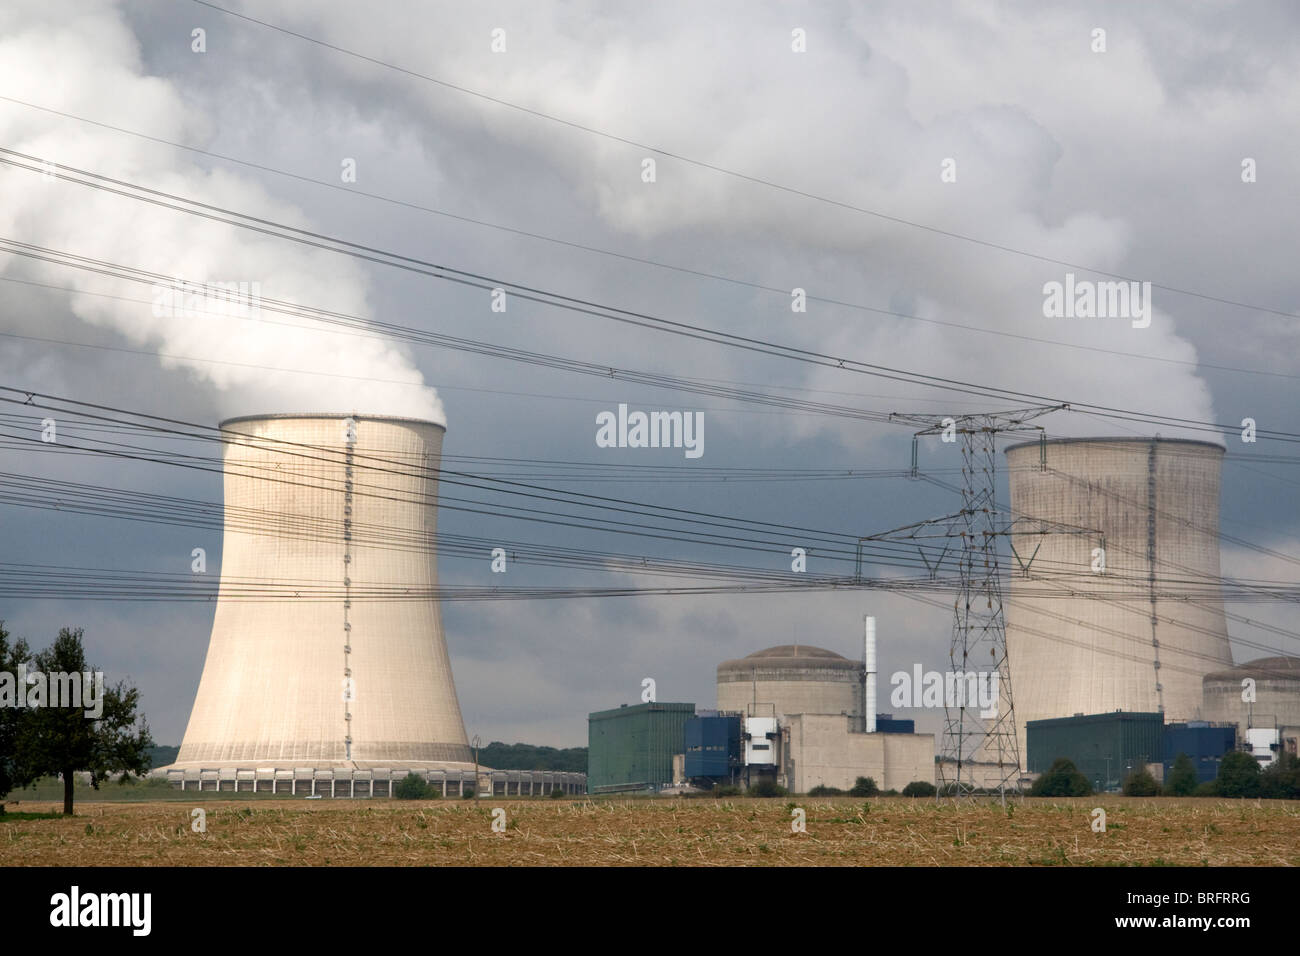 The Cattenom Nuclear Power Plant located in the Cattenom commune along the Moselle River in France. Stock Photo